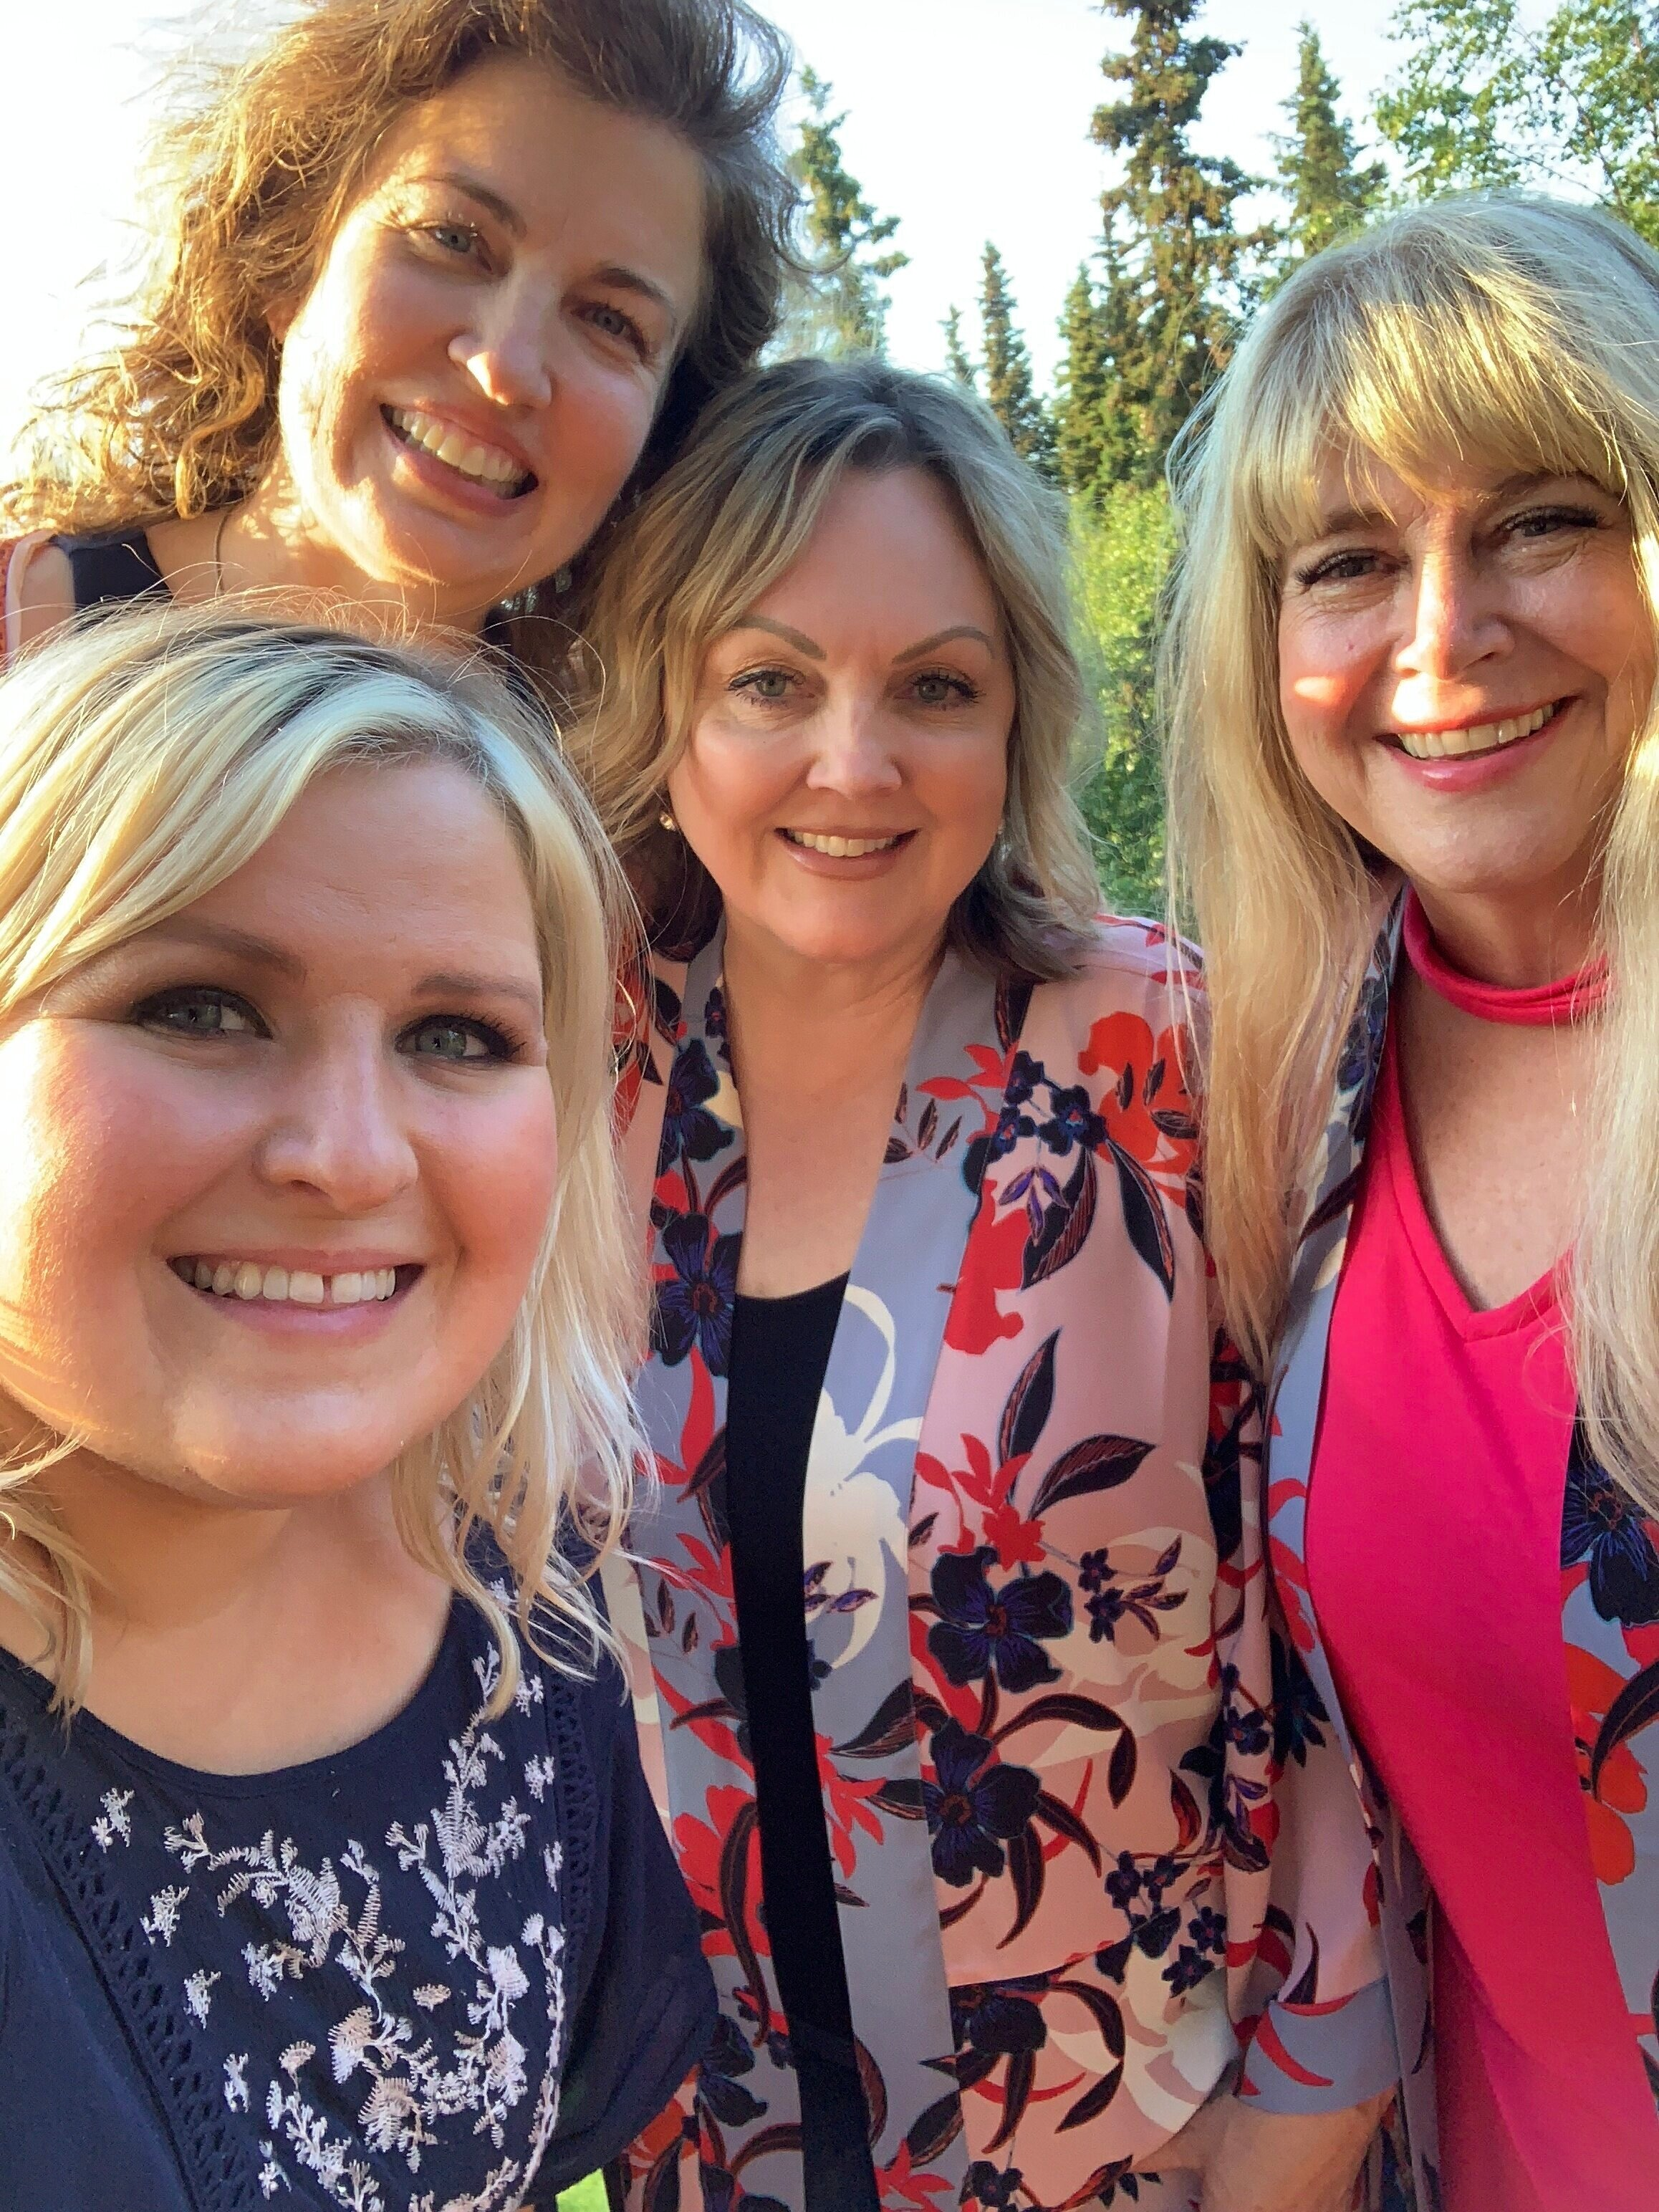 My friend, Debbie Rounds, and some of her squad members: Erica Anderson + Holly day! Different beautycounter teams who come together for events because everyone wins with beautycounter!